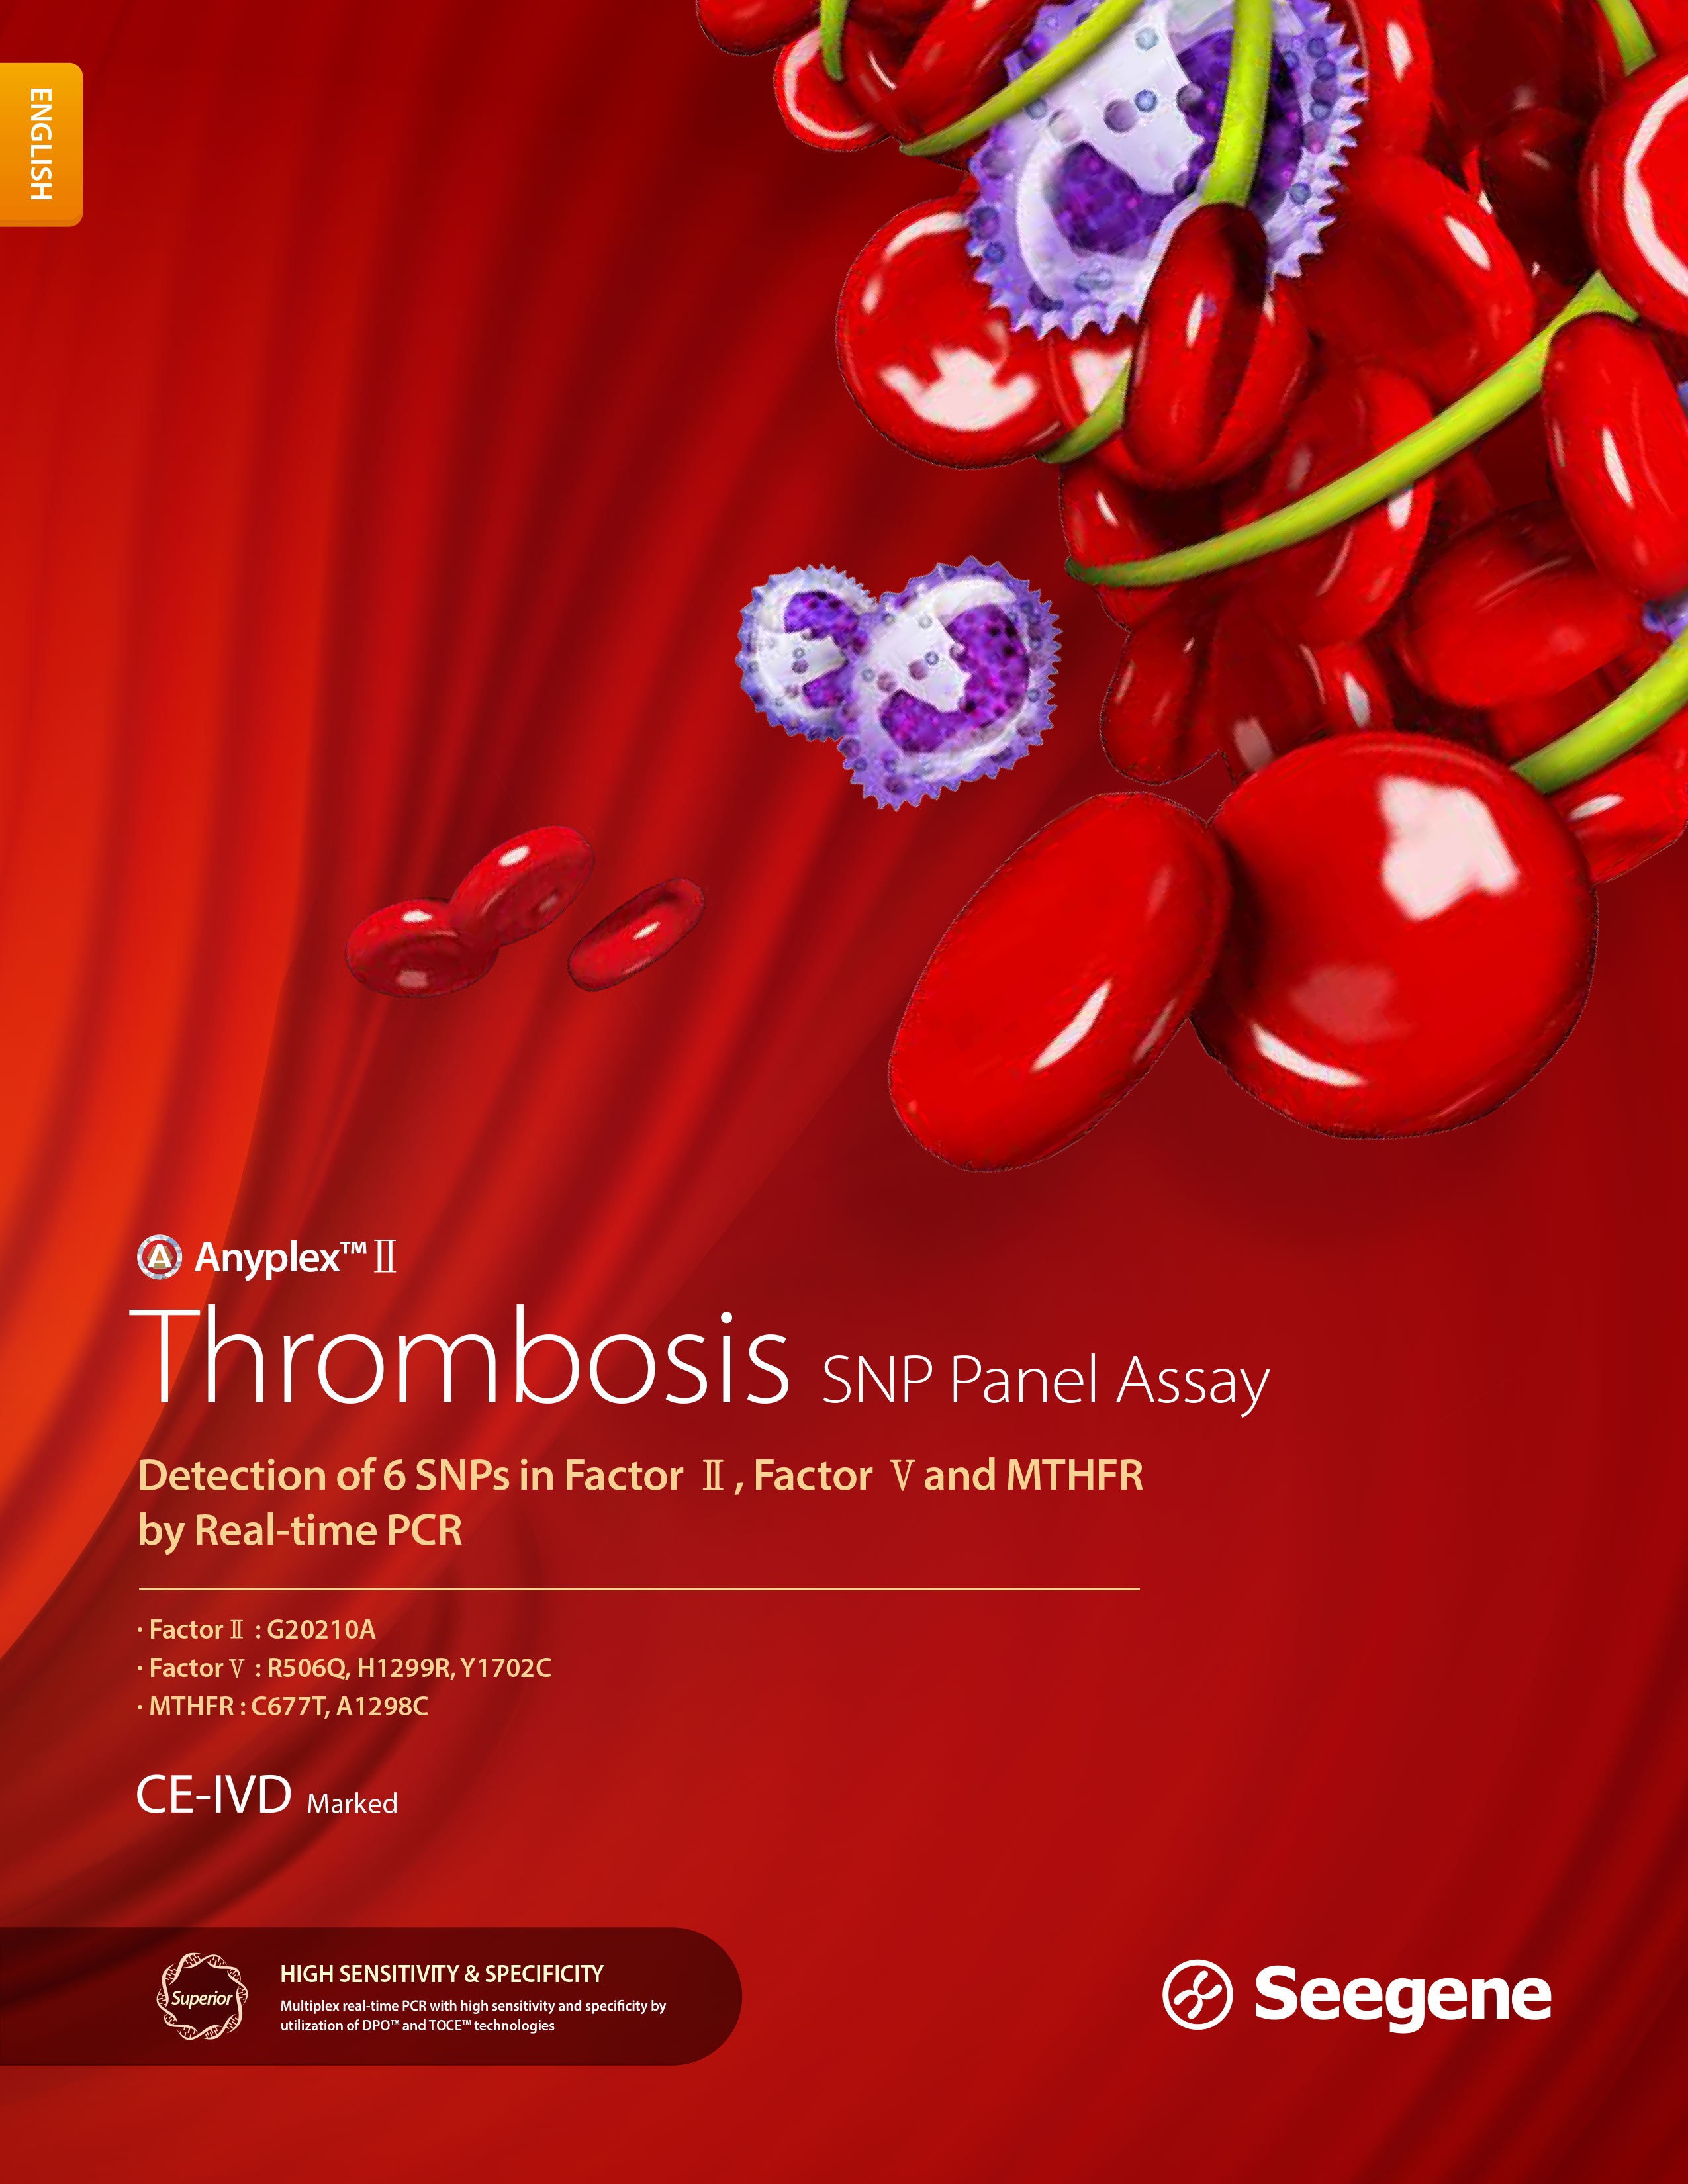 Anyplex™ II Thrombosis SNP Panel Assay